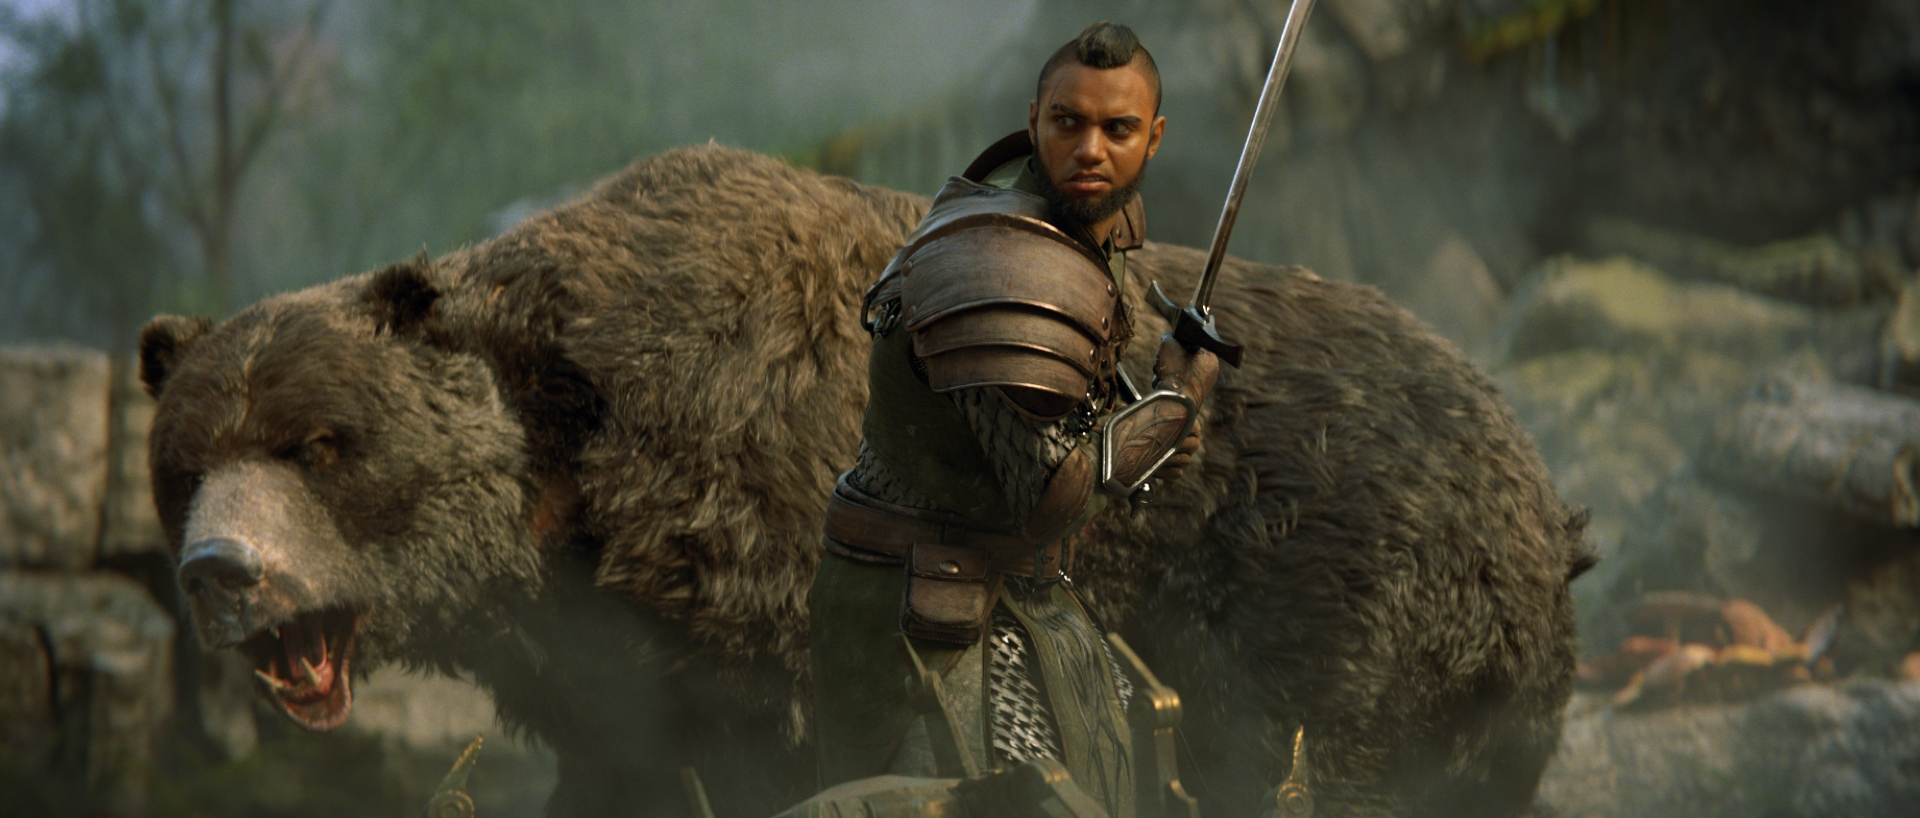 Return to Morrowind in the Next Chapter of The Elder Scrolls Online on June 6th